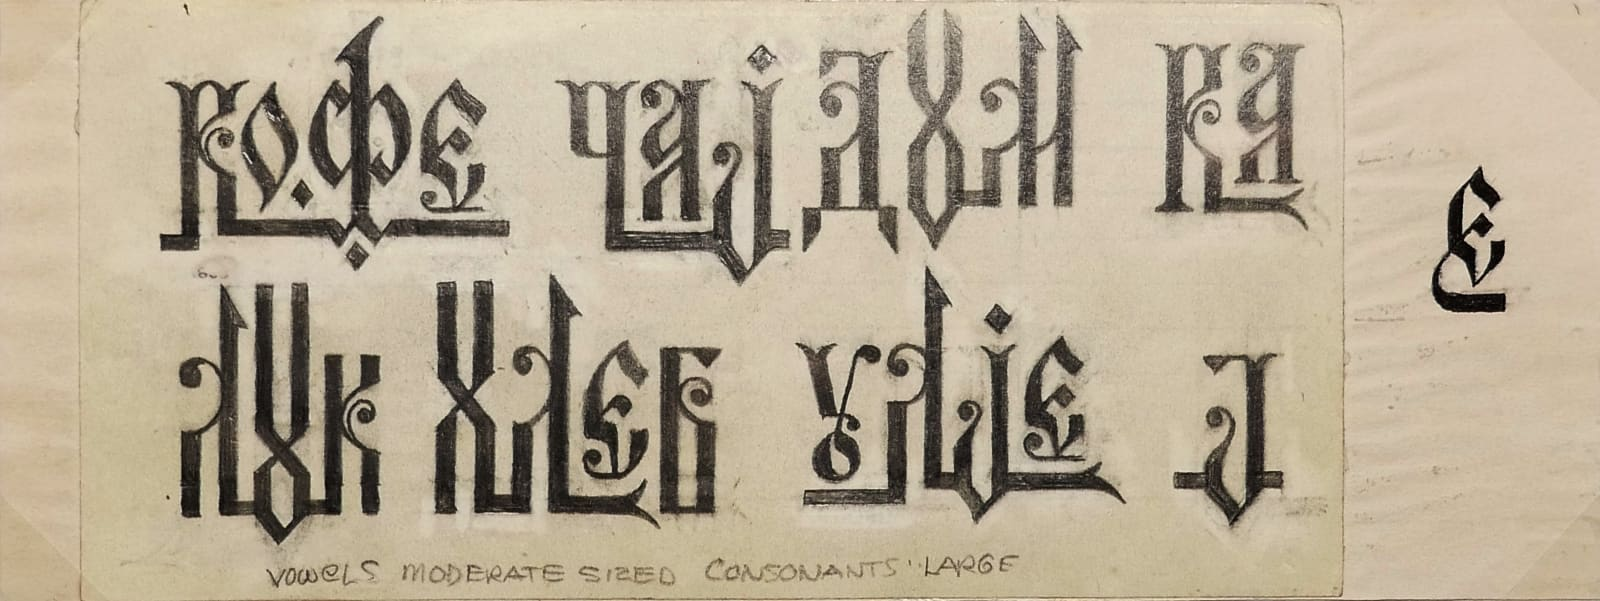 Vowels moderate sized, consonants large (calligraphy) 1970s Ink, pencil on sketch paper 3 1/2 x 9 in (RK 117) $2,000